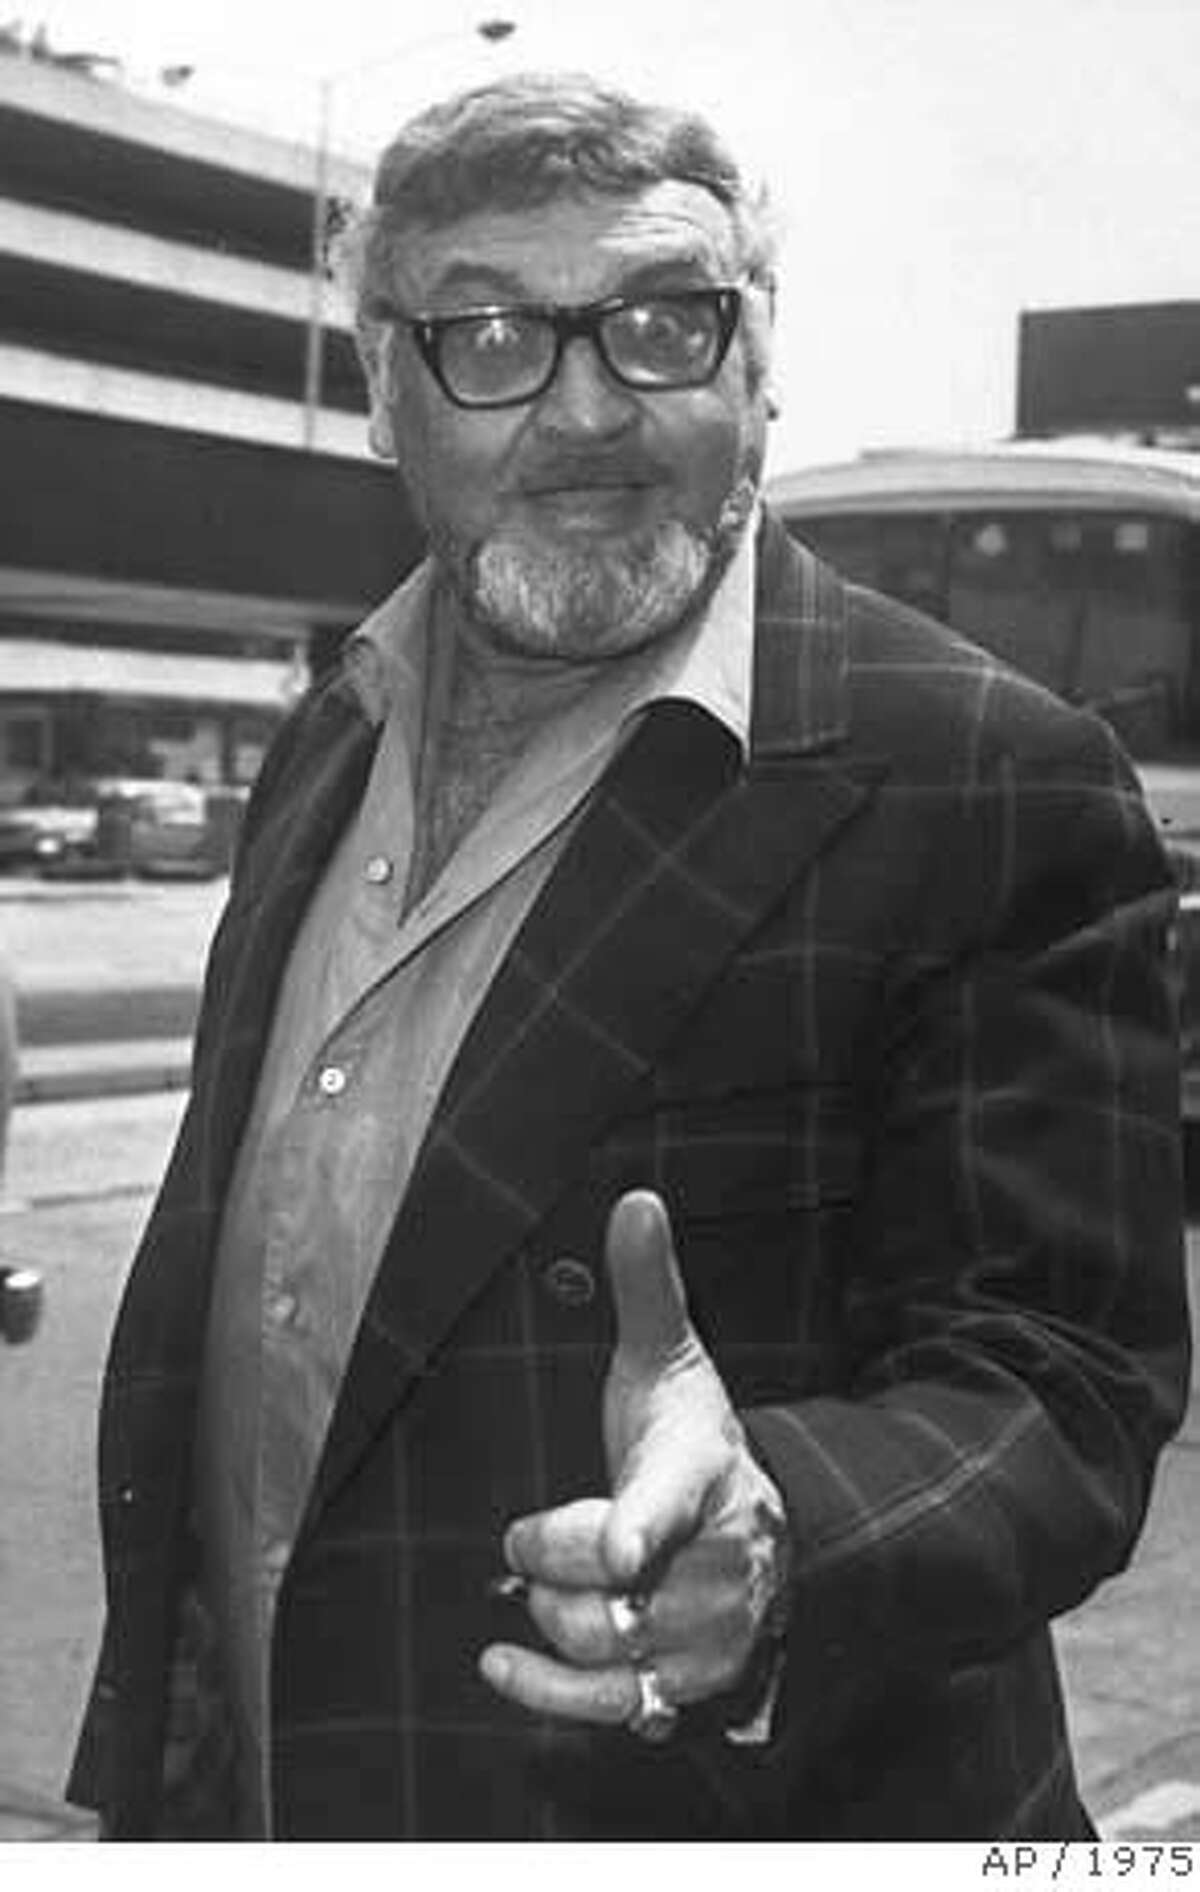 ** FILE ** Singer Frankie Laine is seen in this June 9, 1975 file photo at Heathrow Airport as he returns home to California after an 8-week stay in Britain. Laine, the big-voiced singer whose string of hits made him one of the most popular entertainers of the 1950s, died Tuesday, Feb. 5, 2007. He was 93. (AP Photo/PA)